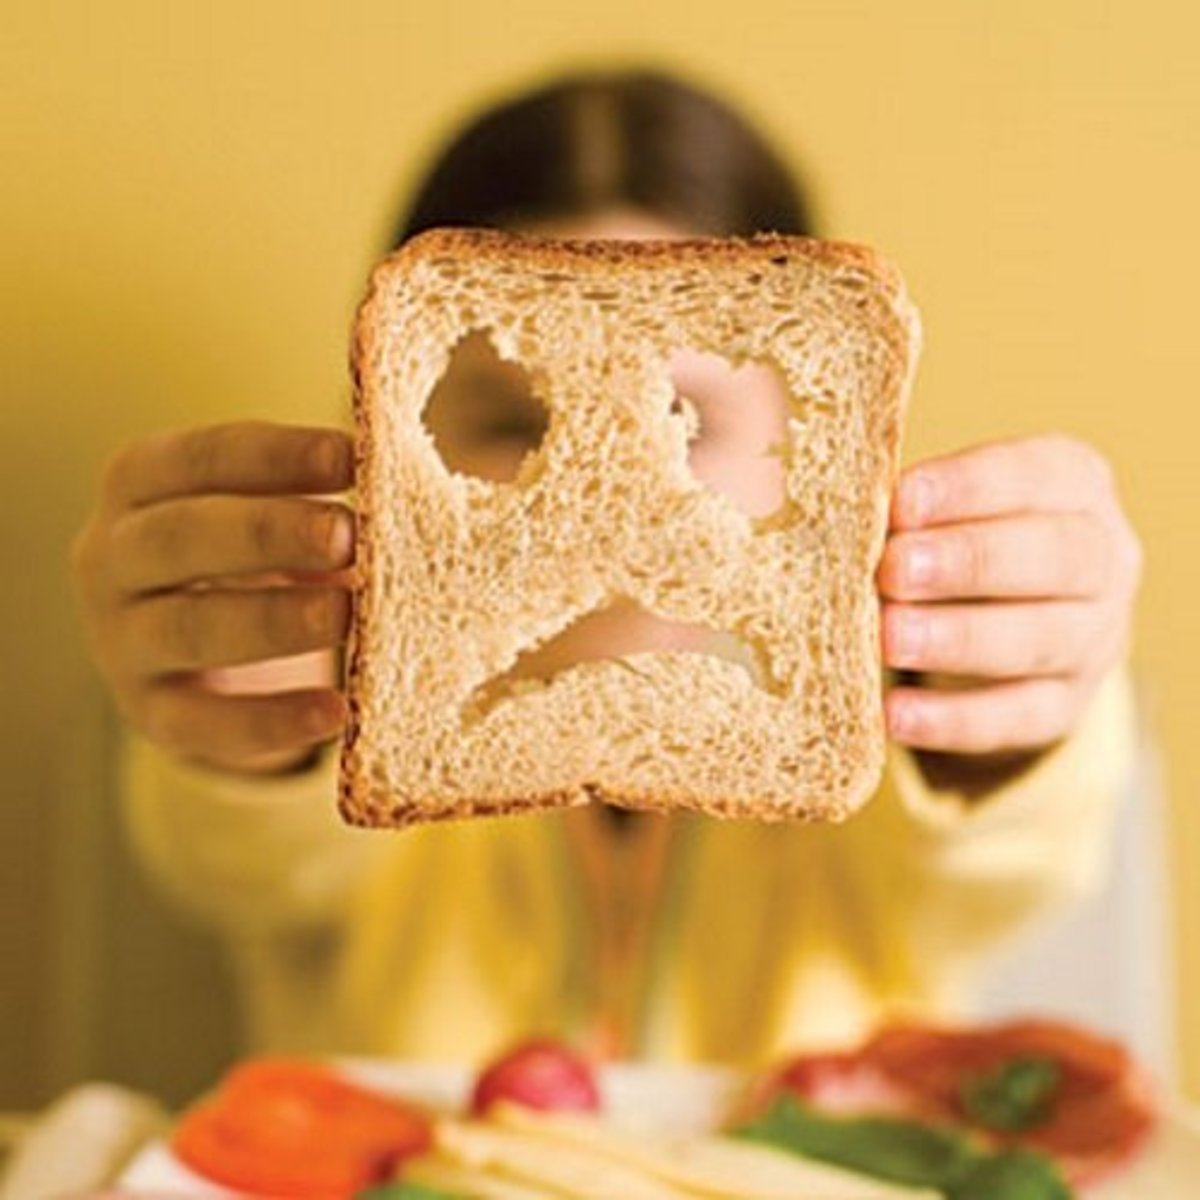 Gluten allergy and Celiac disease.